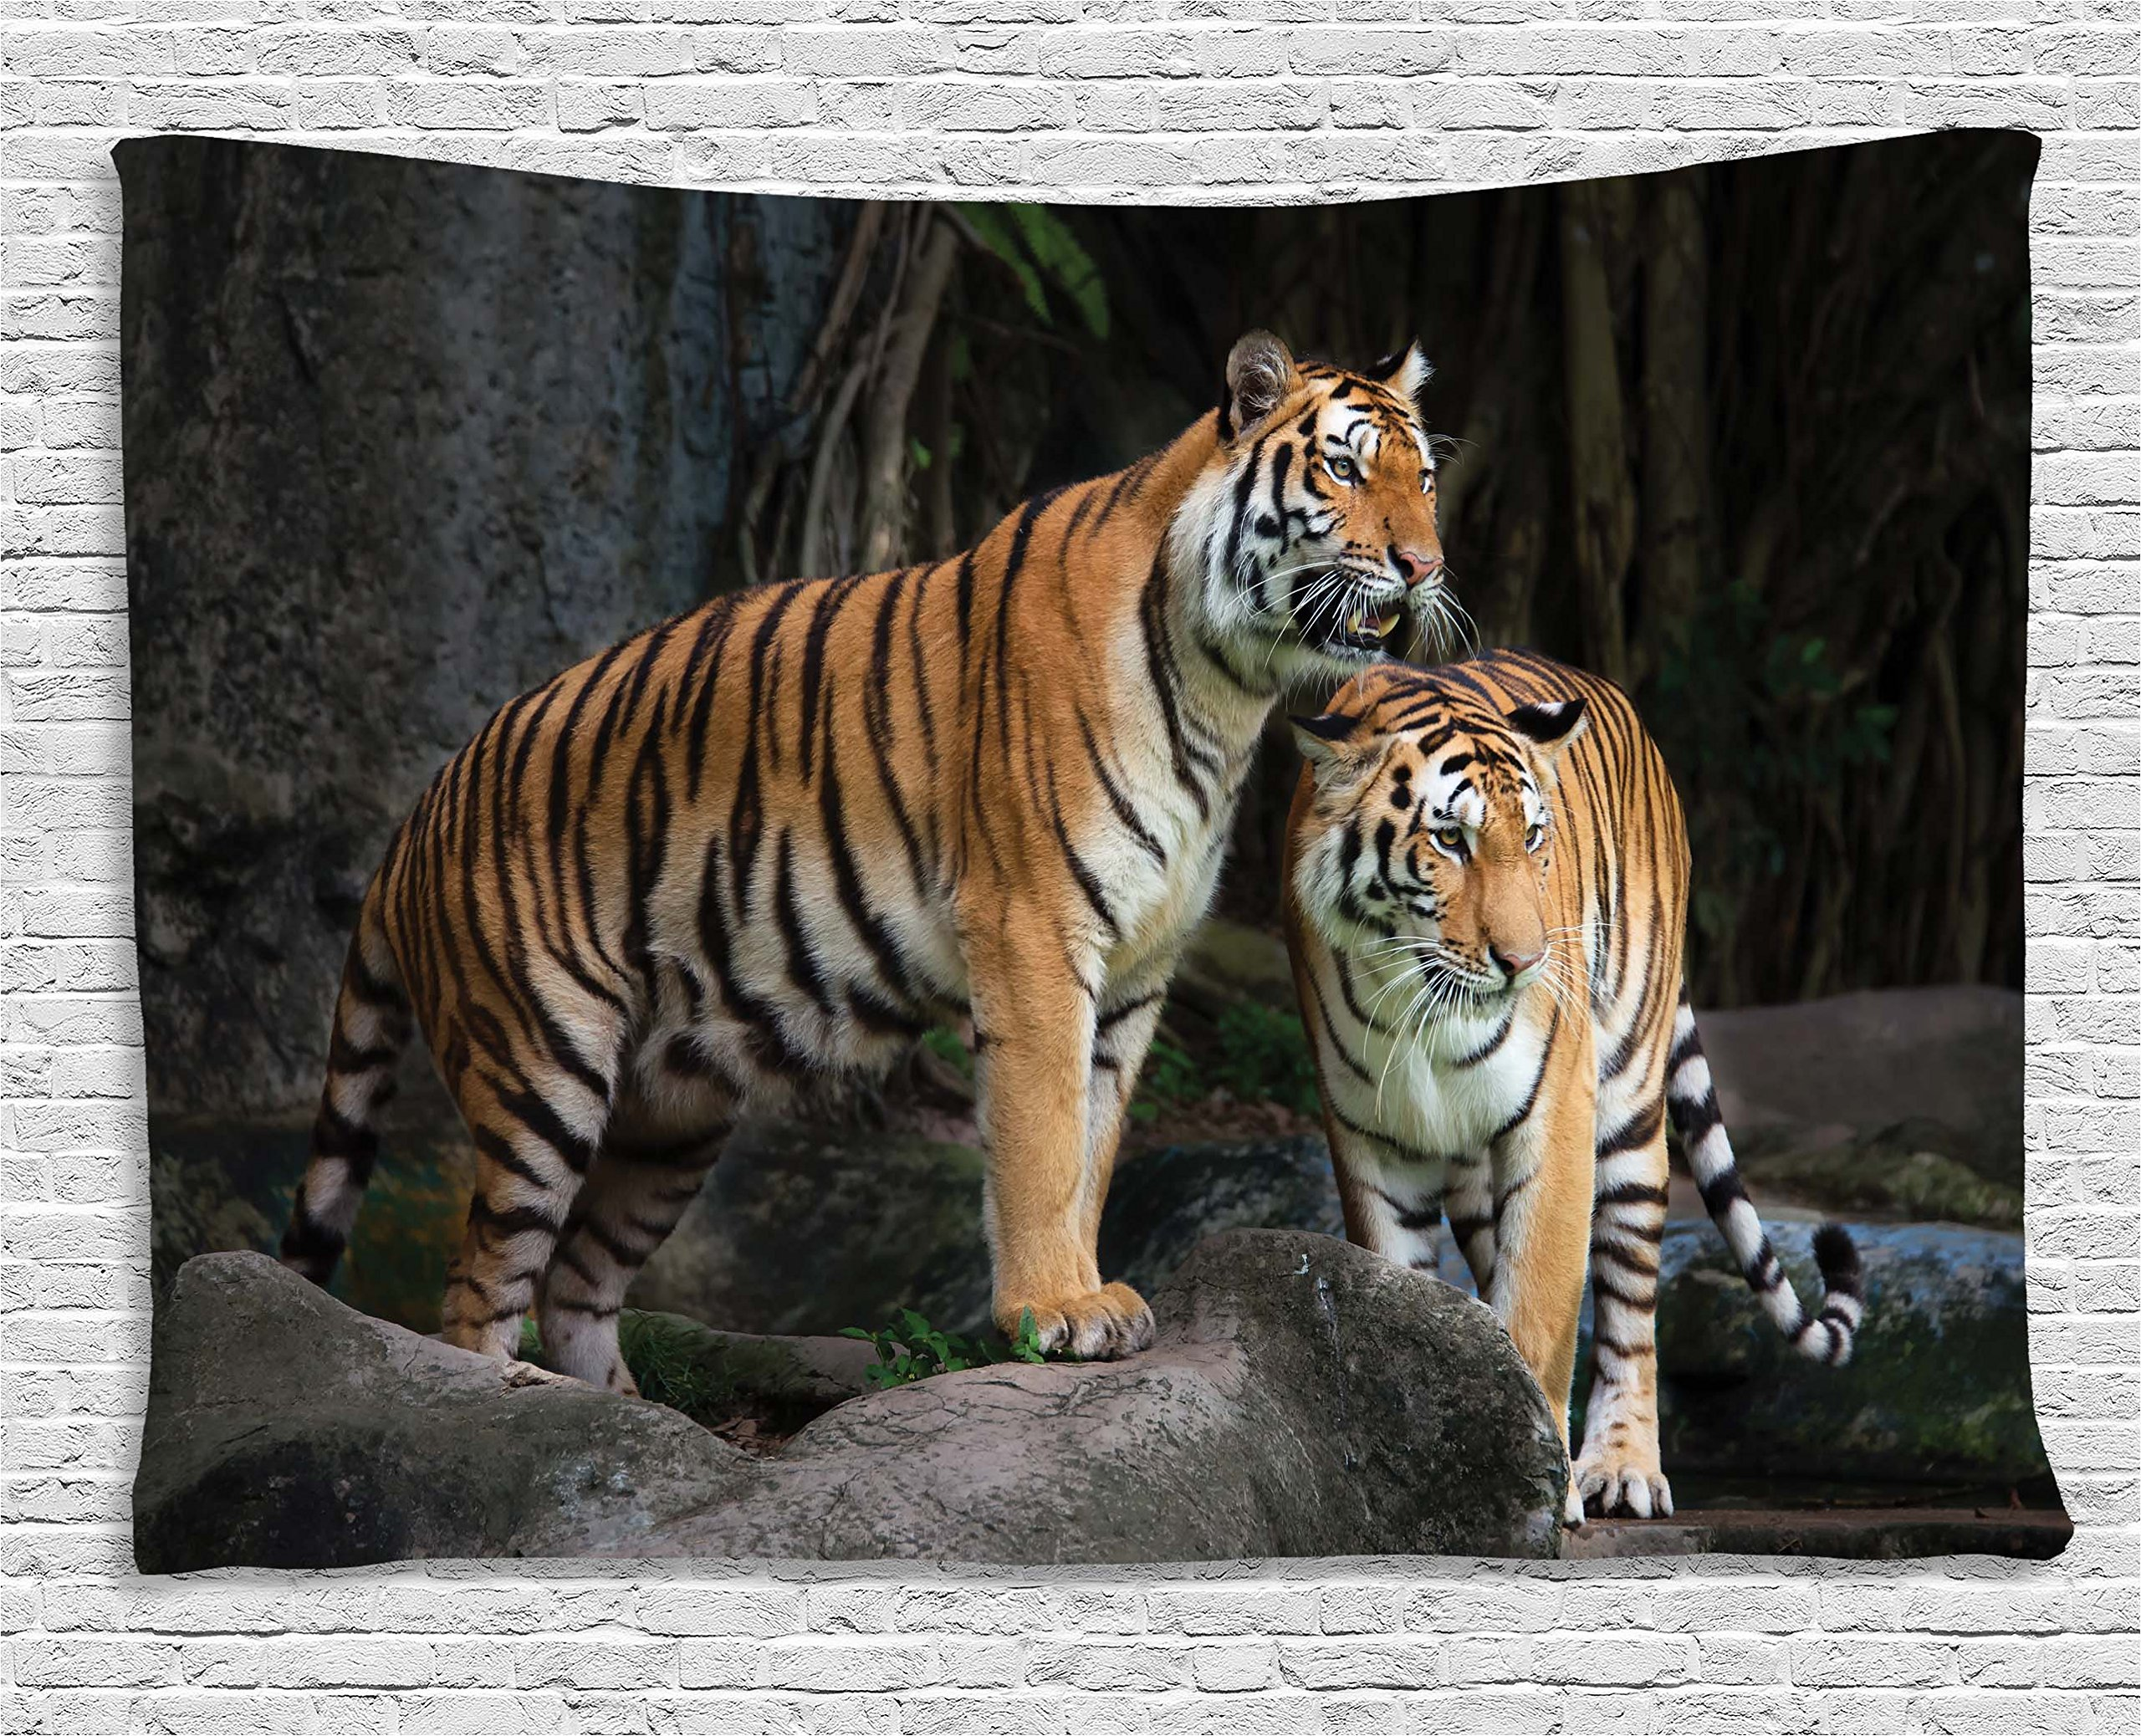 Ambesonne Animal Decor Tapestry, Tiger Couple in The Jungle on Big Rocks Image Wild Cats in Nature Print, Wall Hanging for Bedroom Living Room Dorm, 60 W X 40 L Inches, Grey and Ginger